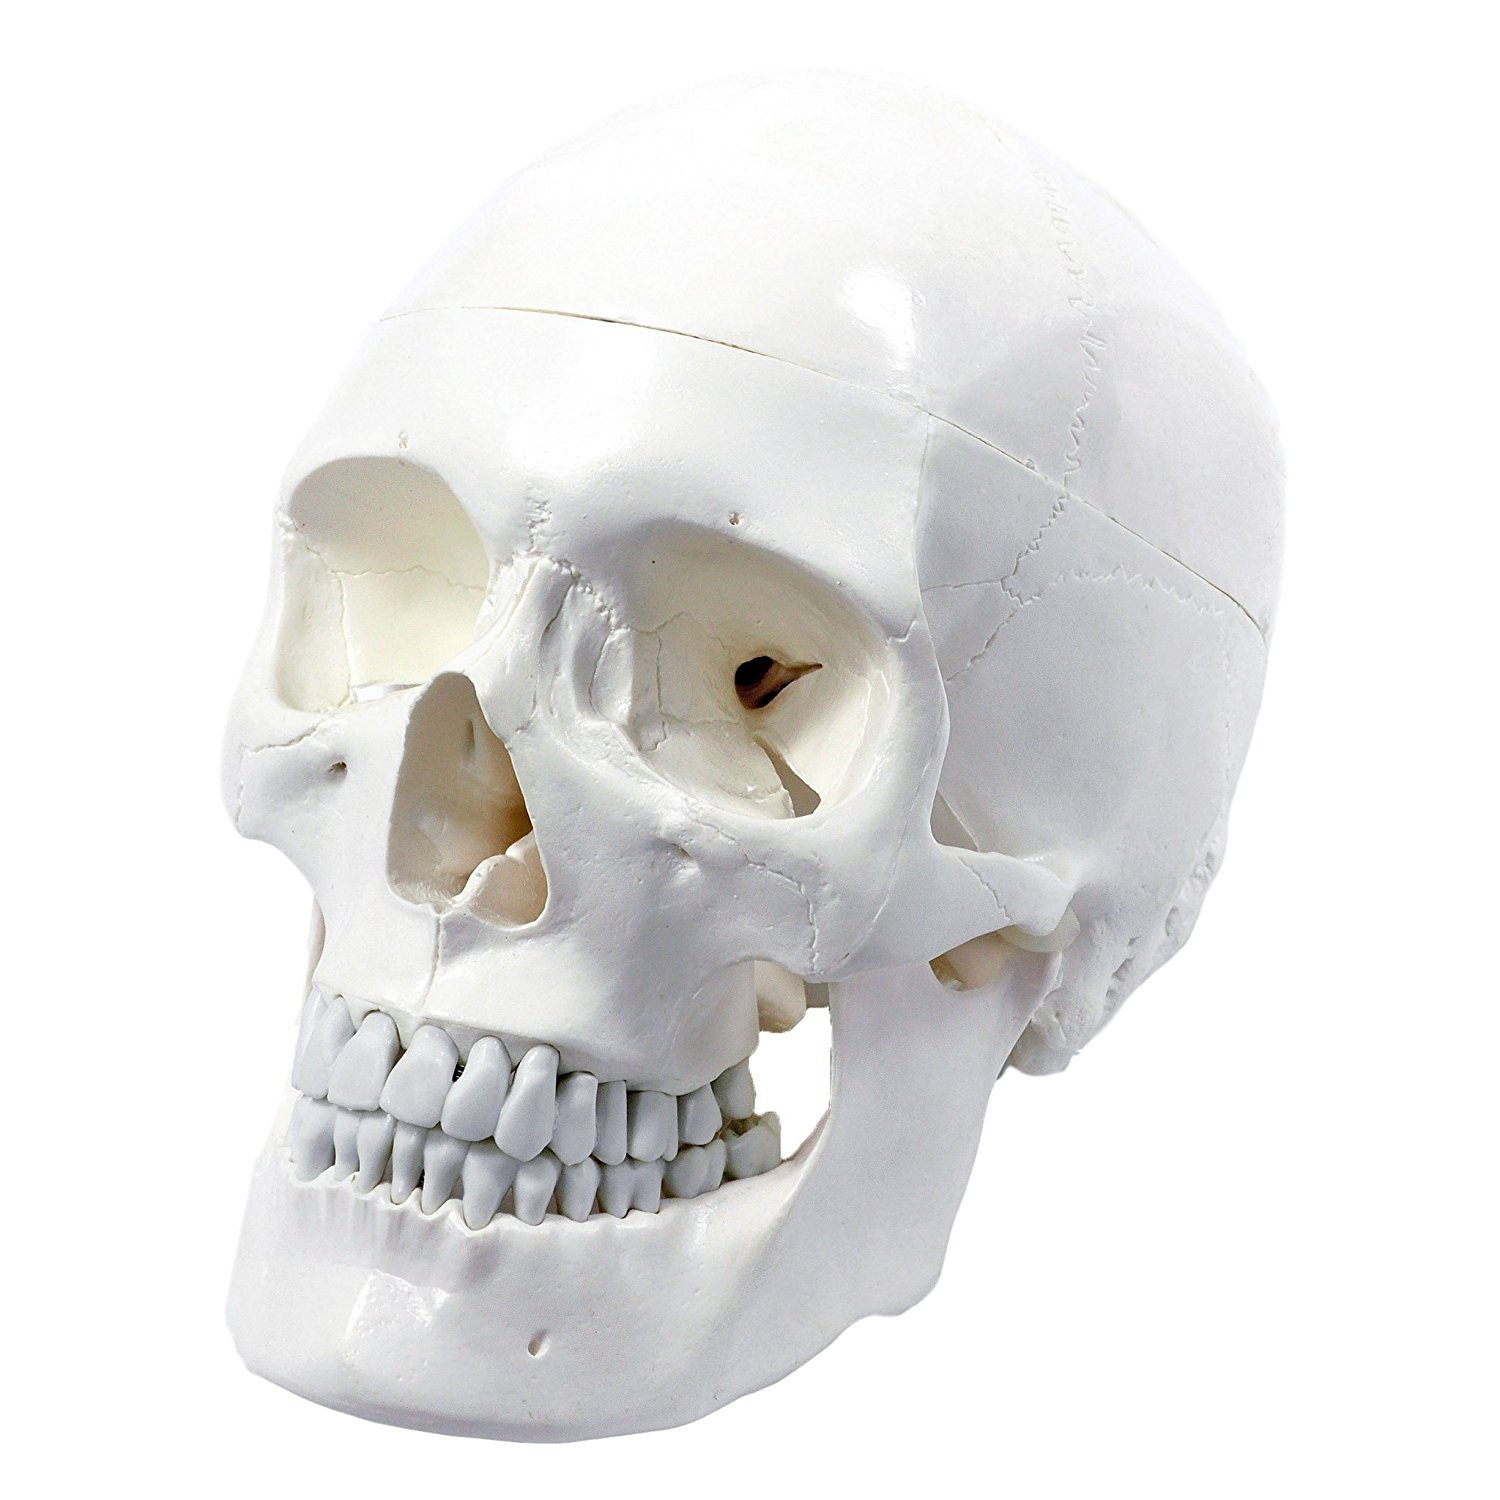 Wellden Medical Anatomical Human Skull Model Classic 3 Part Life